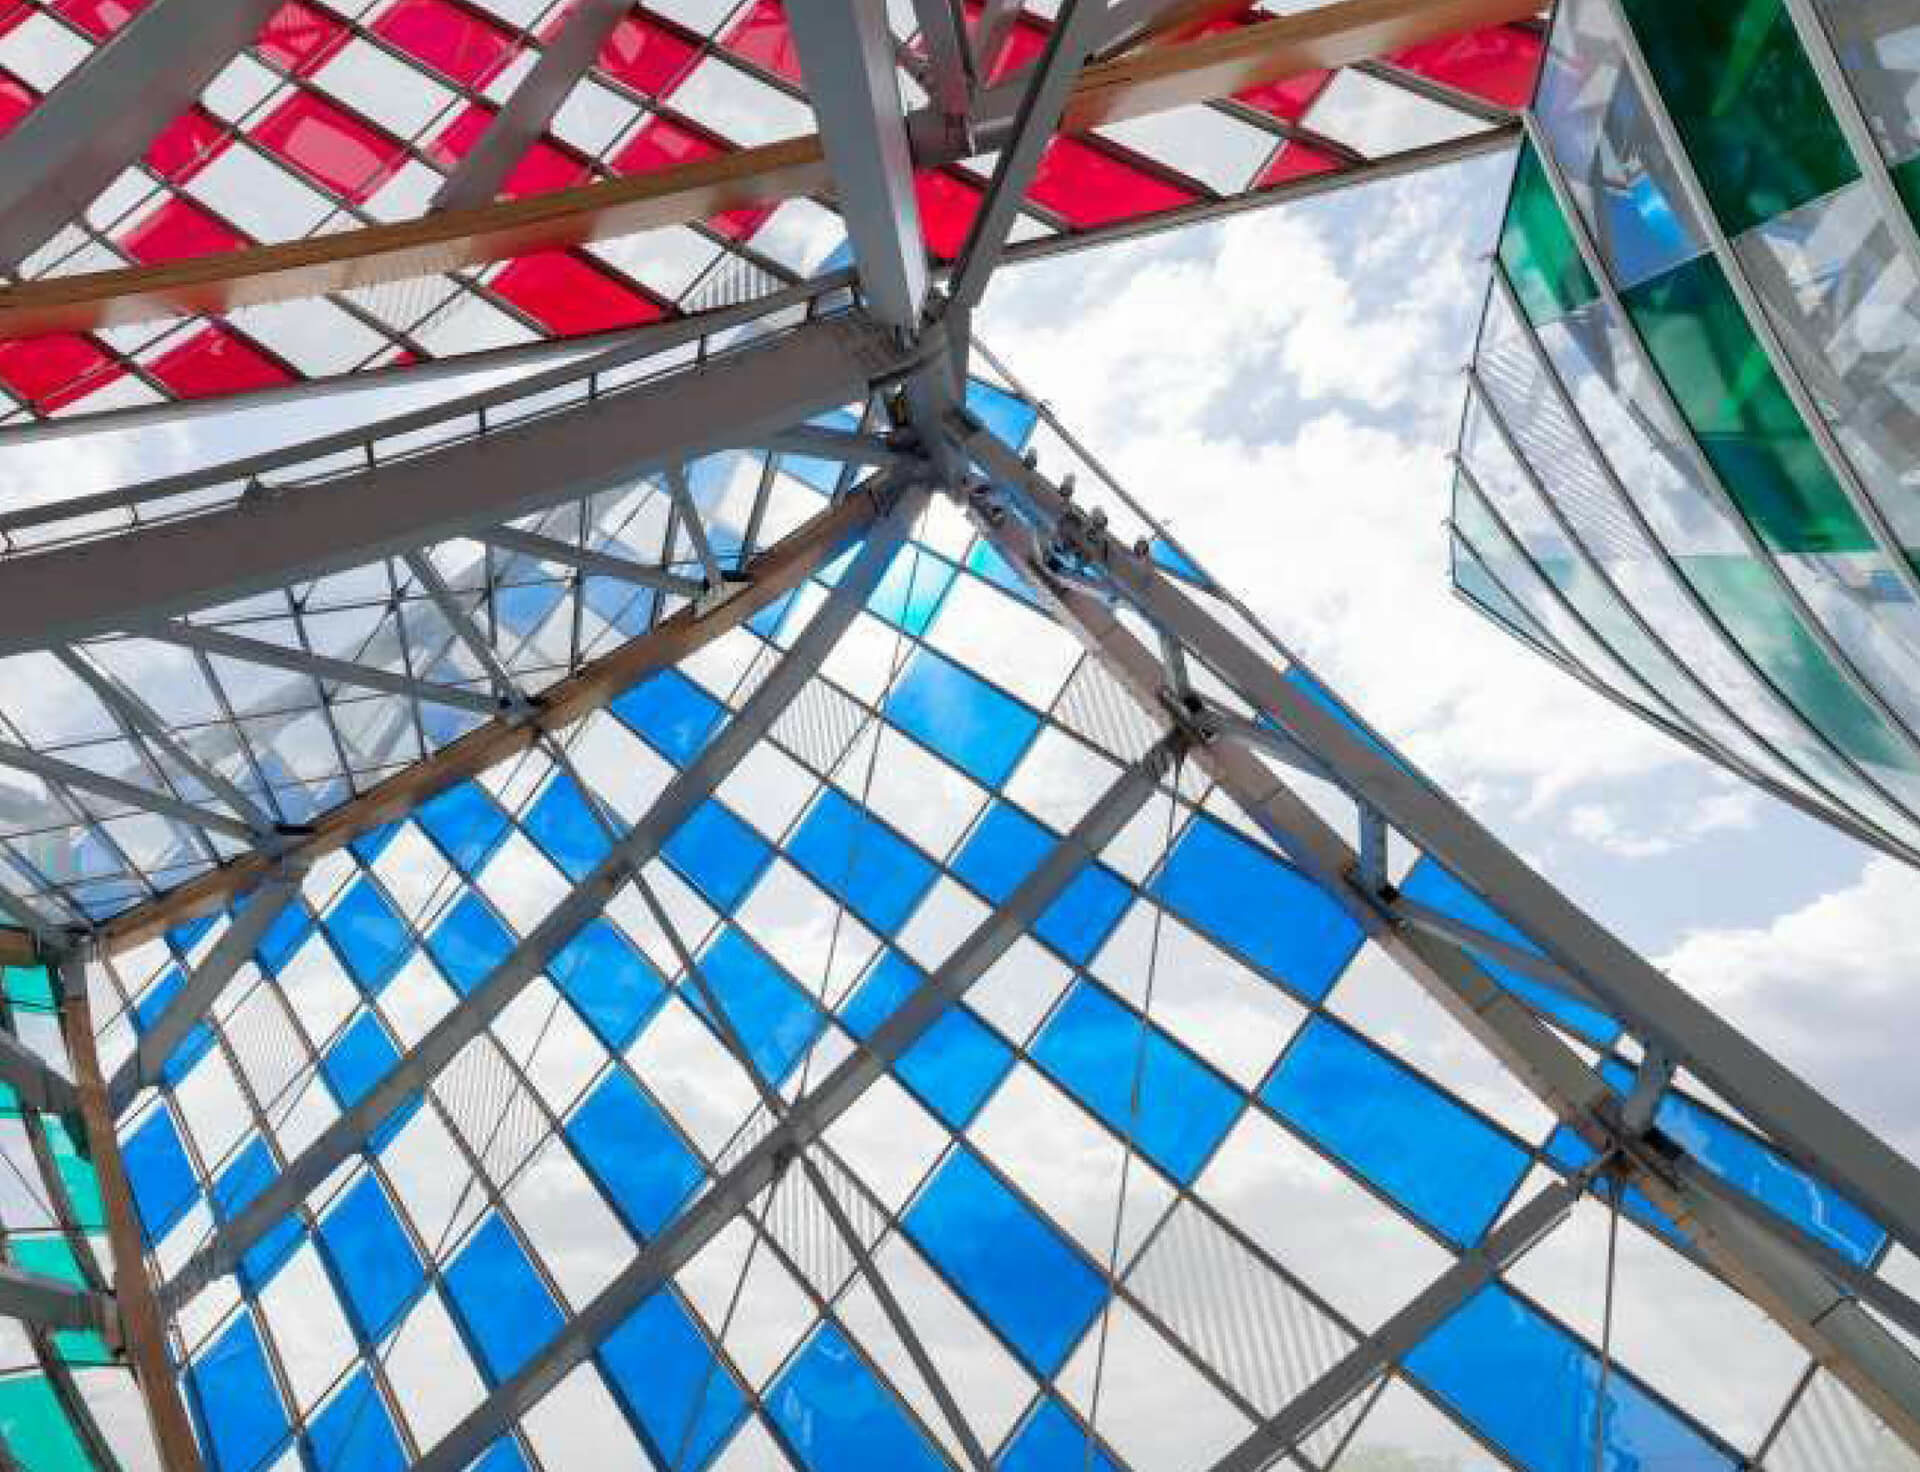 Daniel Buren to unveil installation at Fondation Louis Vuitton, Paris